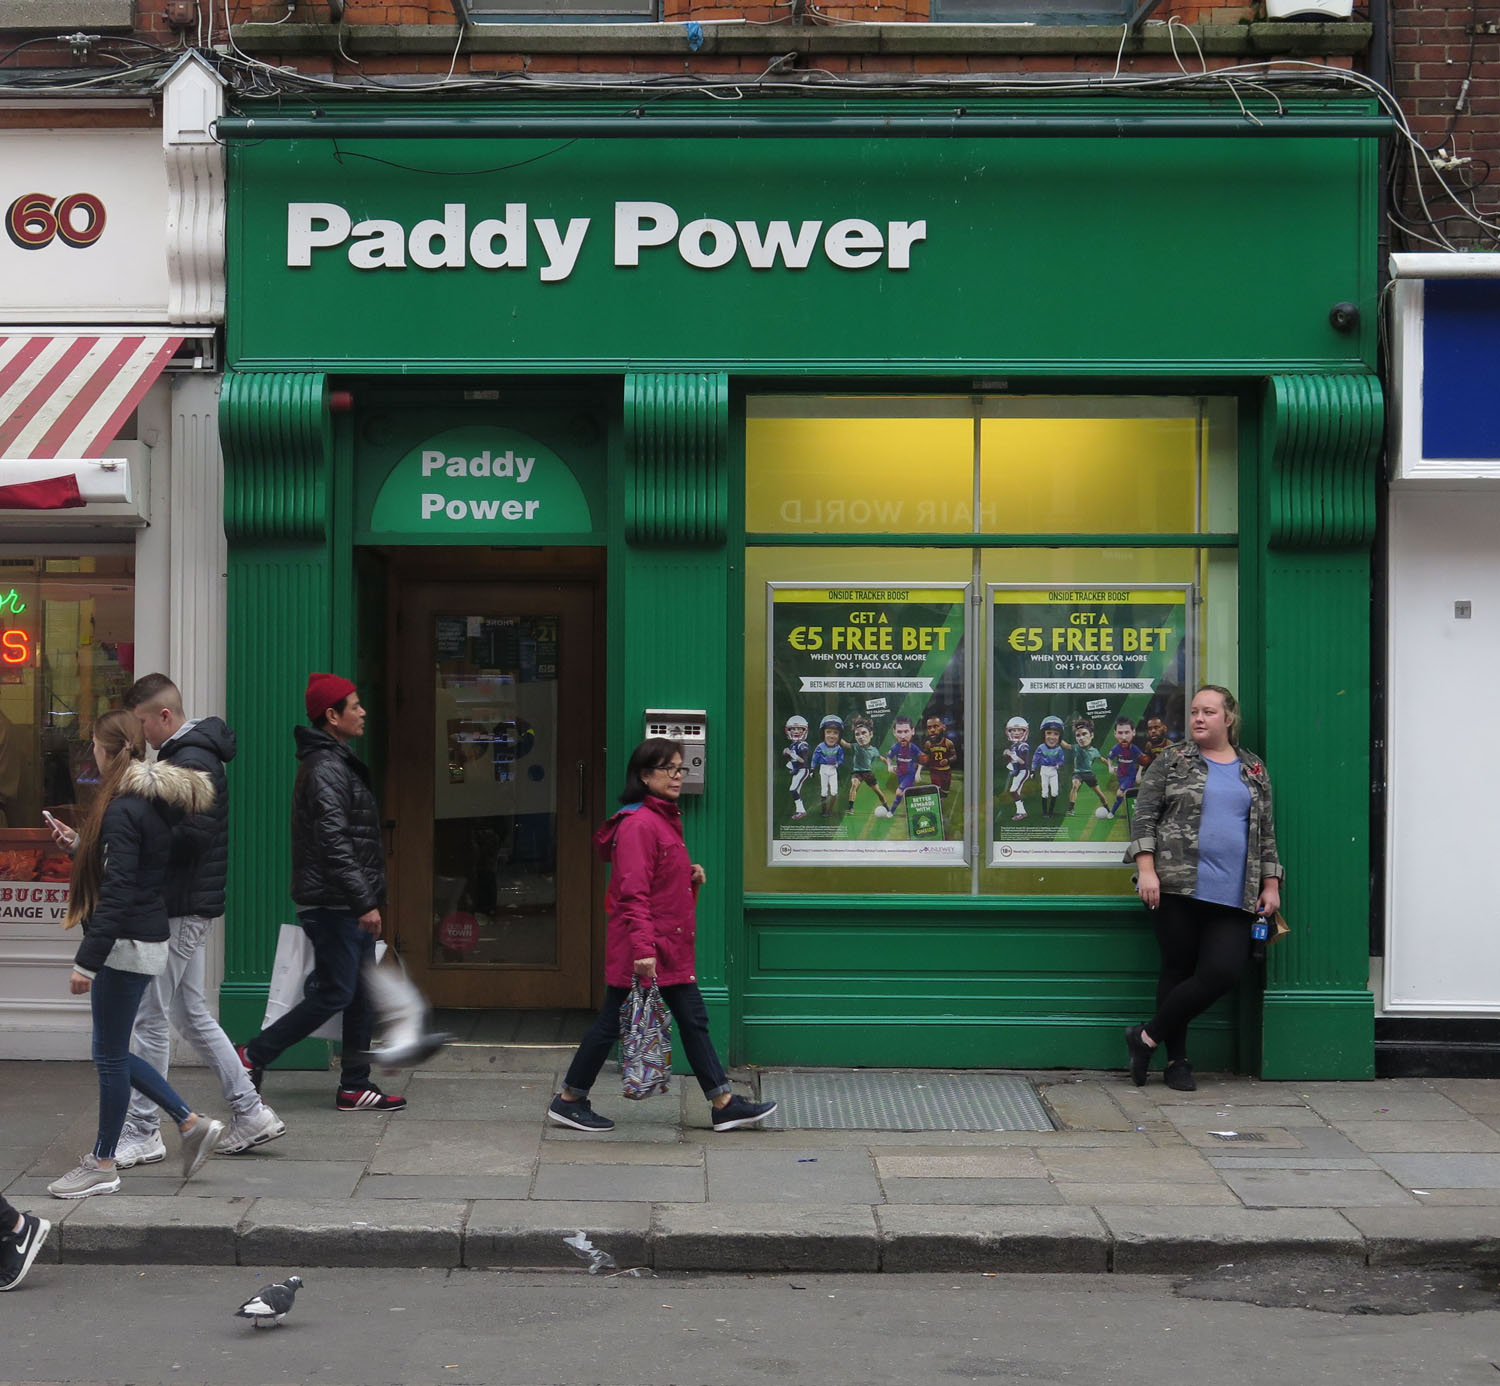 Ireland-Dublin-Street-Scenes-Paddy-Power-Bookmaker